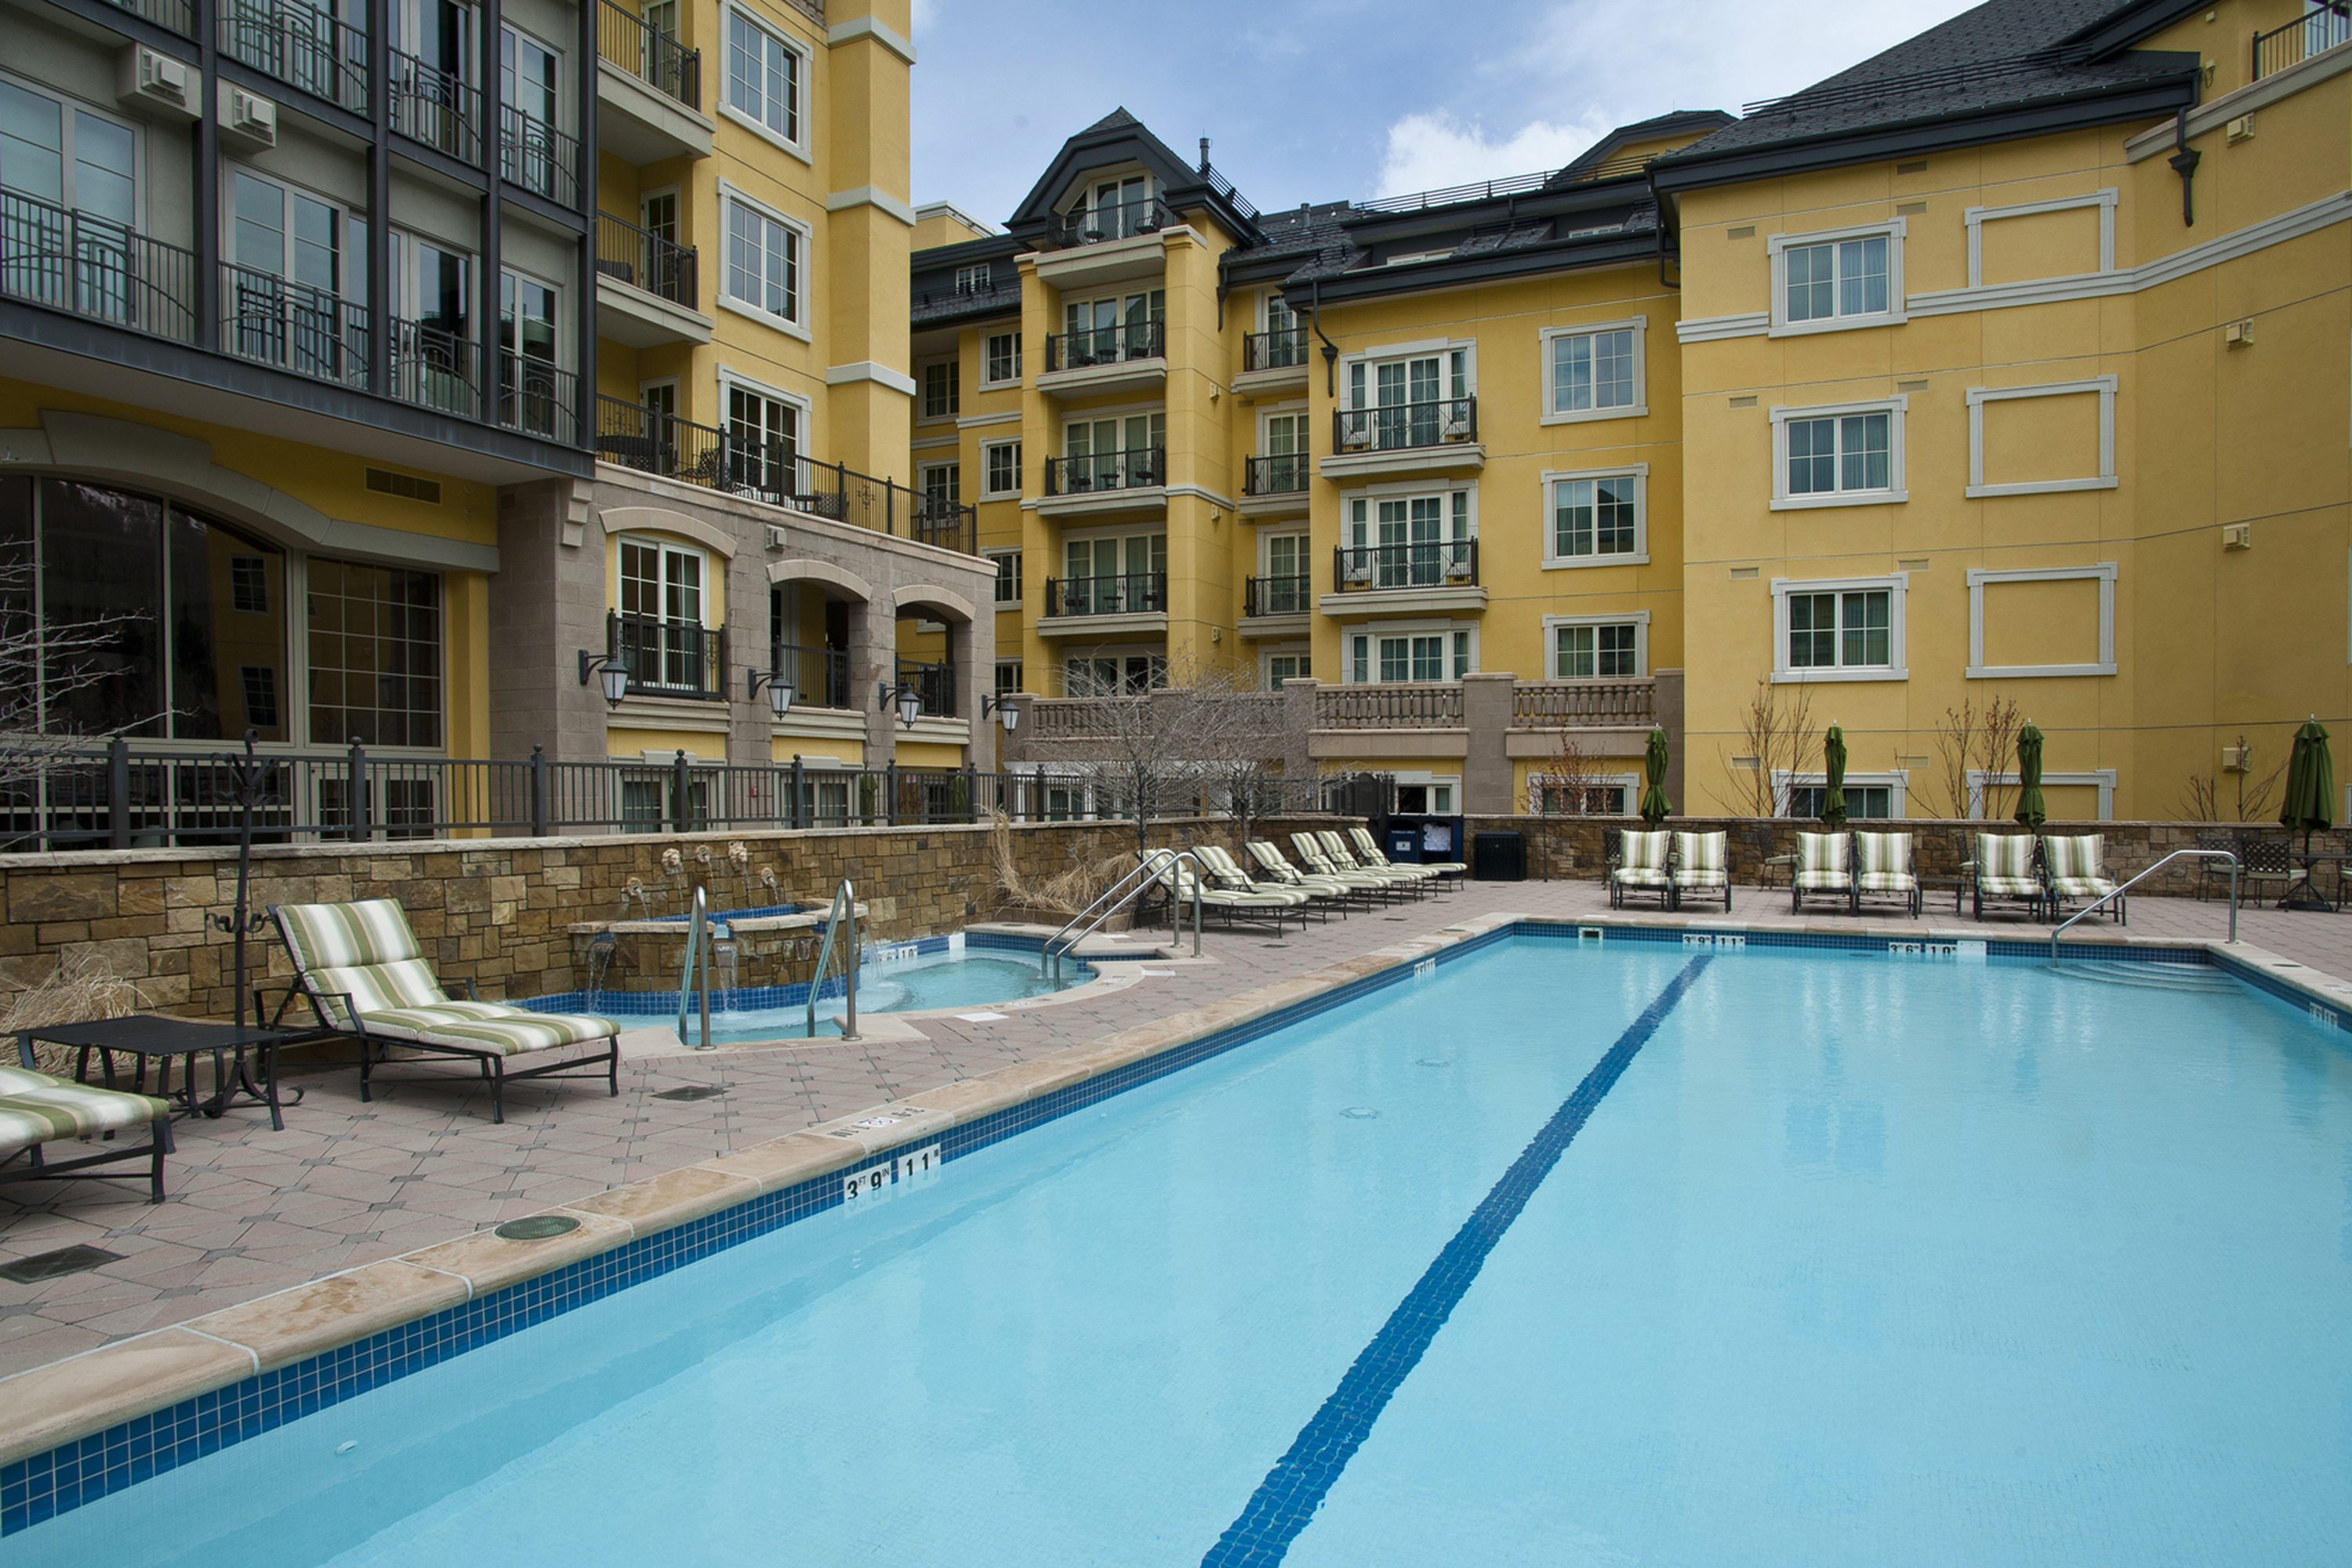 Splash around in one of Vail's nicest pool and hot tub areas!